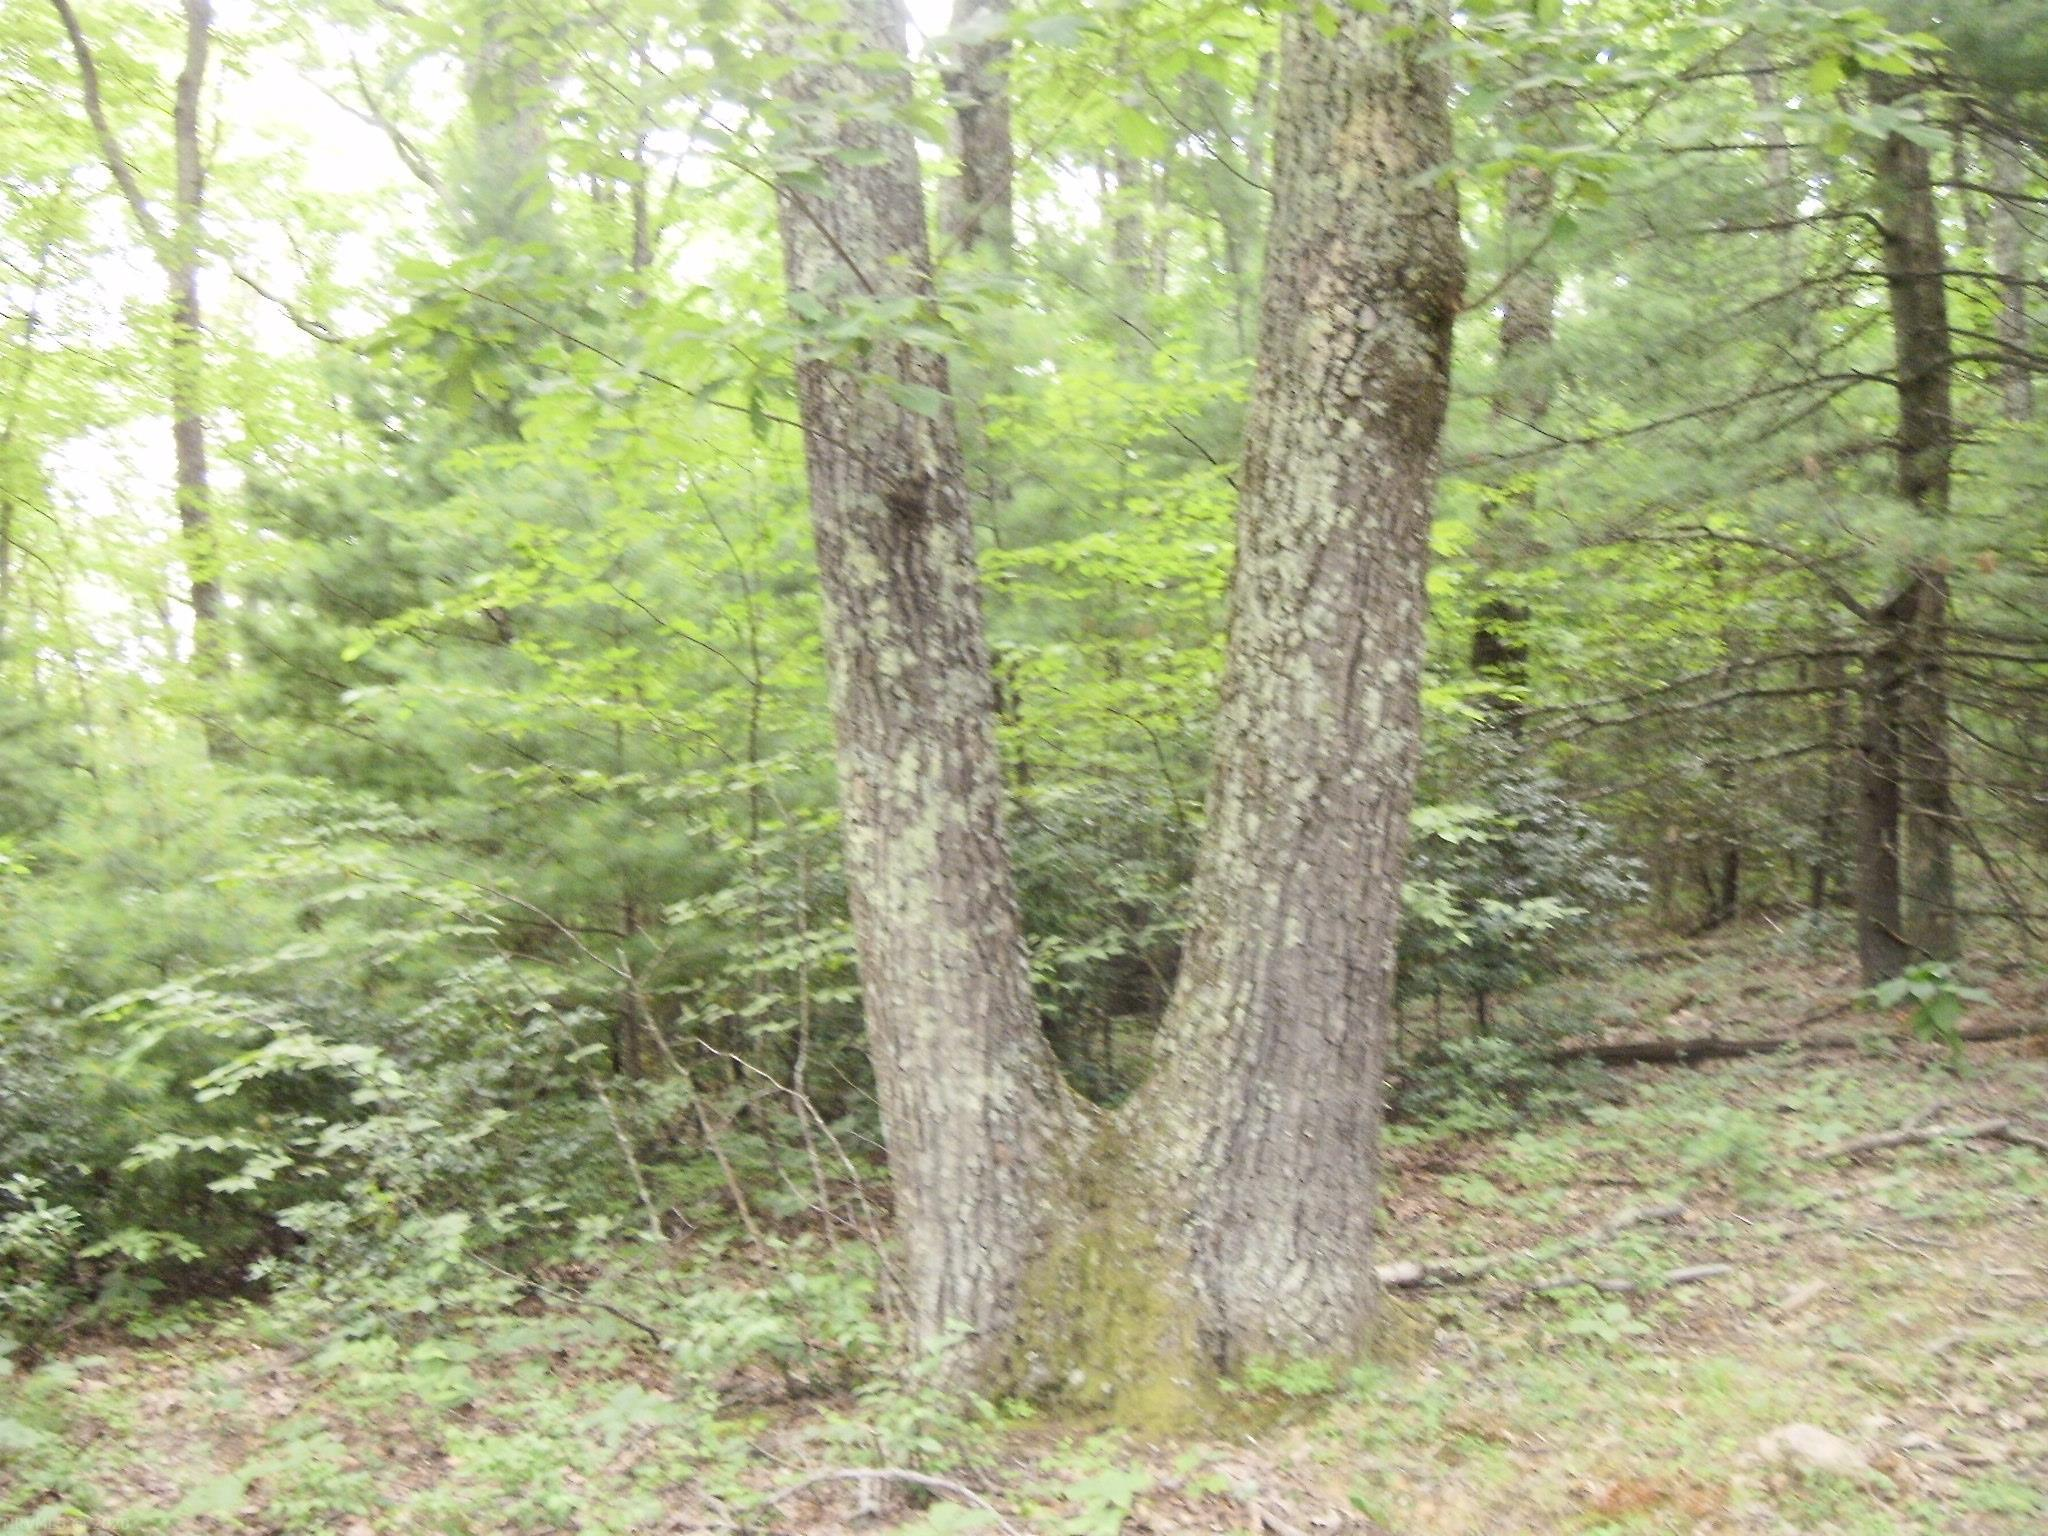 Enjoy privacy and country living close to town. Just 2 minutes from the Blue Ridge Parkway!  Less than 15 minutes to the town of Floyd.  2.46 acres of mostly level wooded land.  This parcel has been previously evaluated for septic and is clearly marked.  Beautiful mature hardwood trees, Rhododendrons, and Mountain Laurels make this property a great choice for your home or rural Floyd retreat.